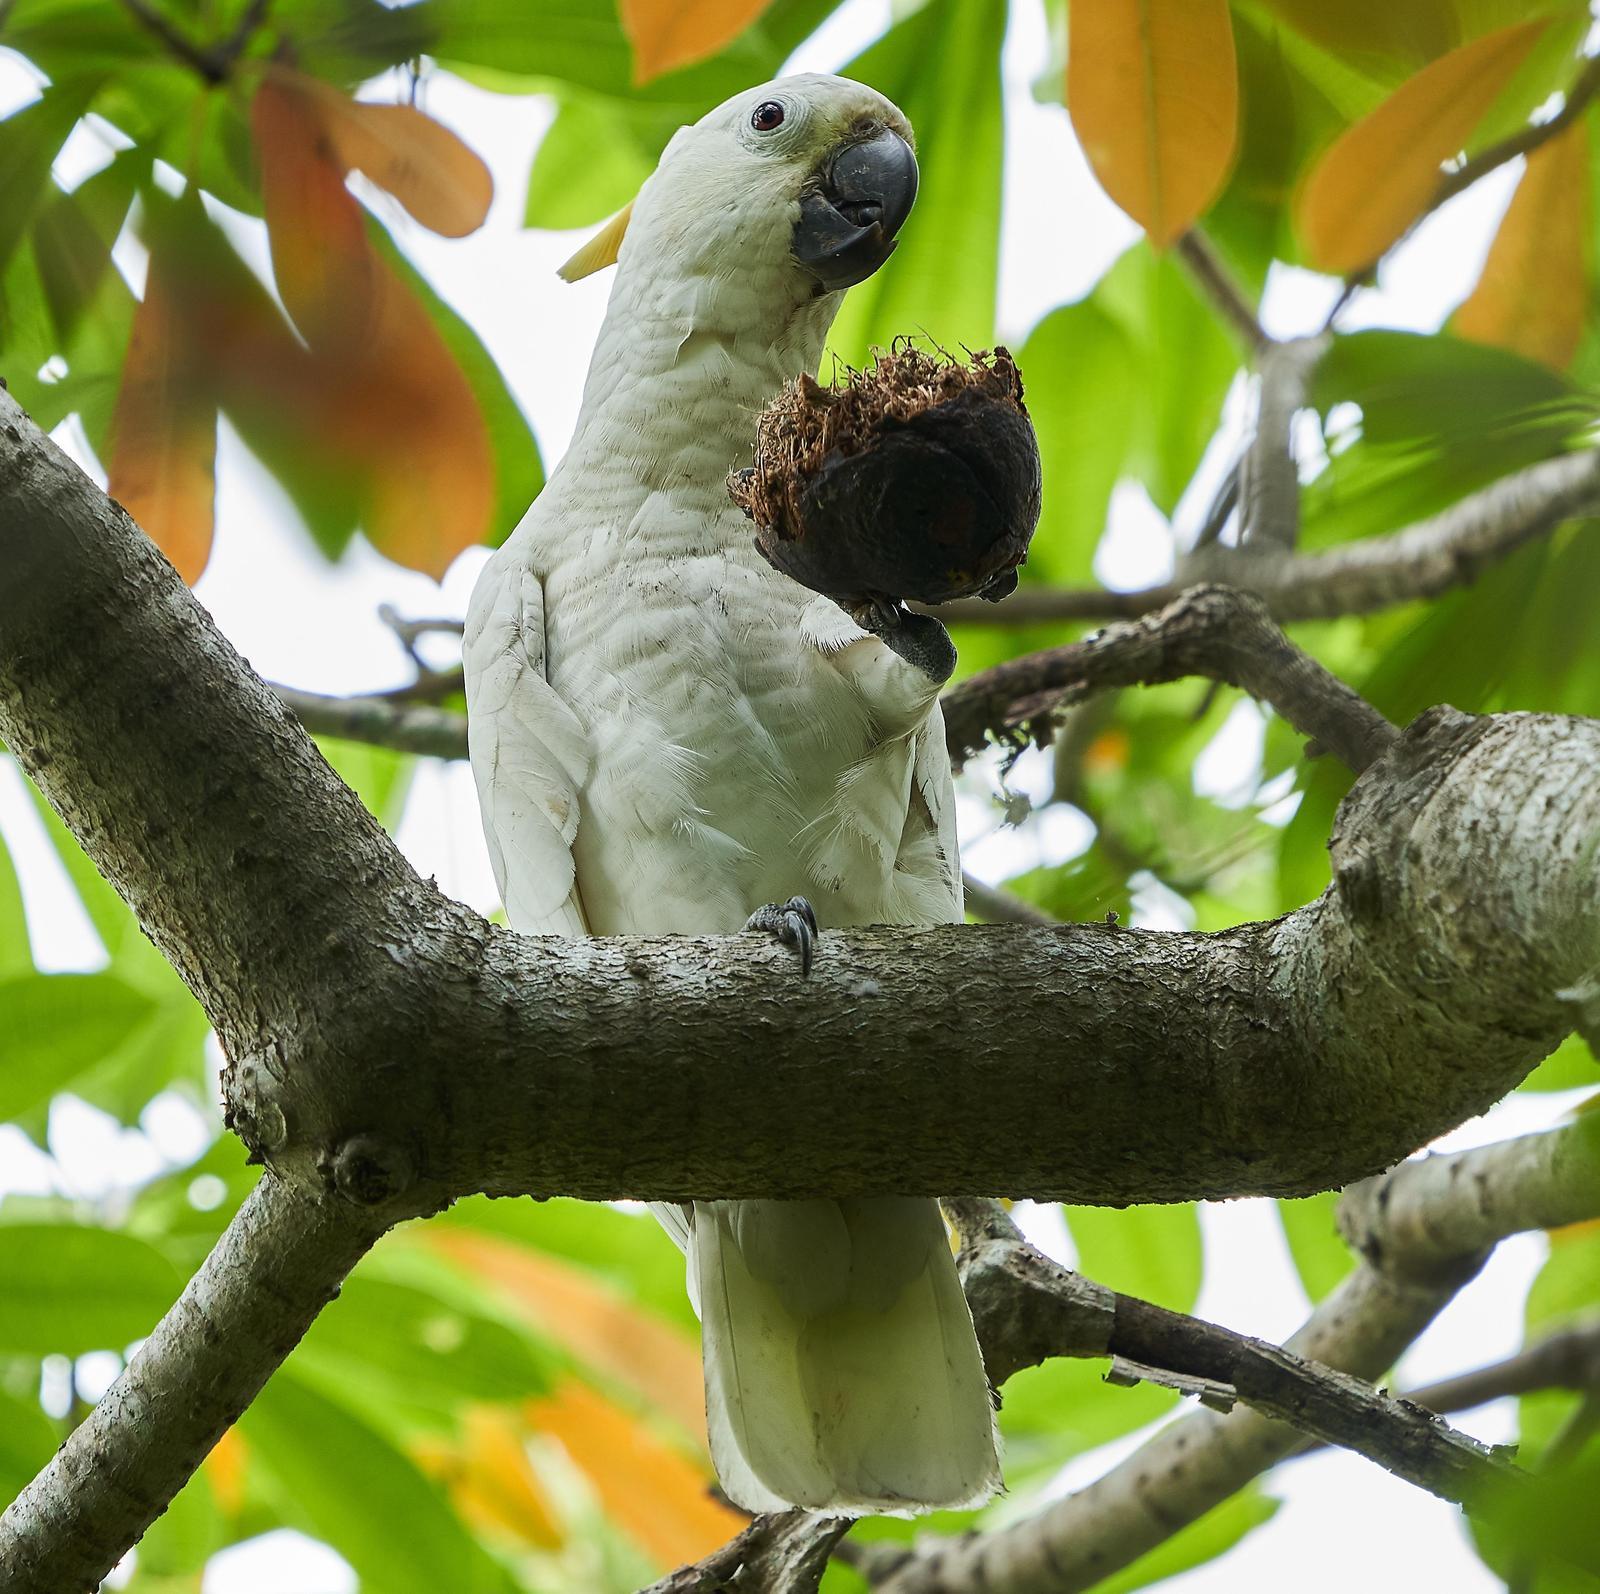 Sulphur-crested Cockatoo Photo by Steven Cheong